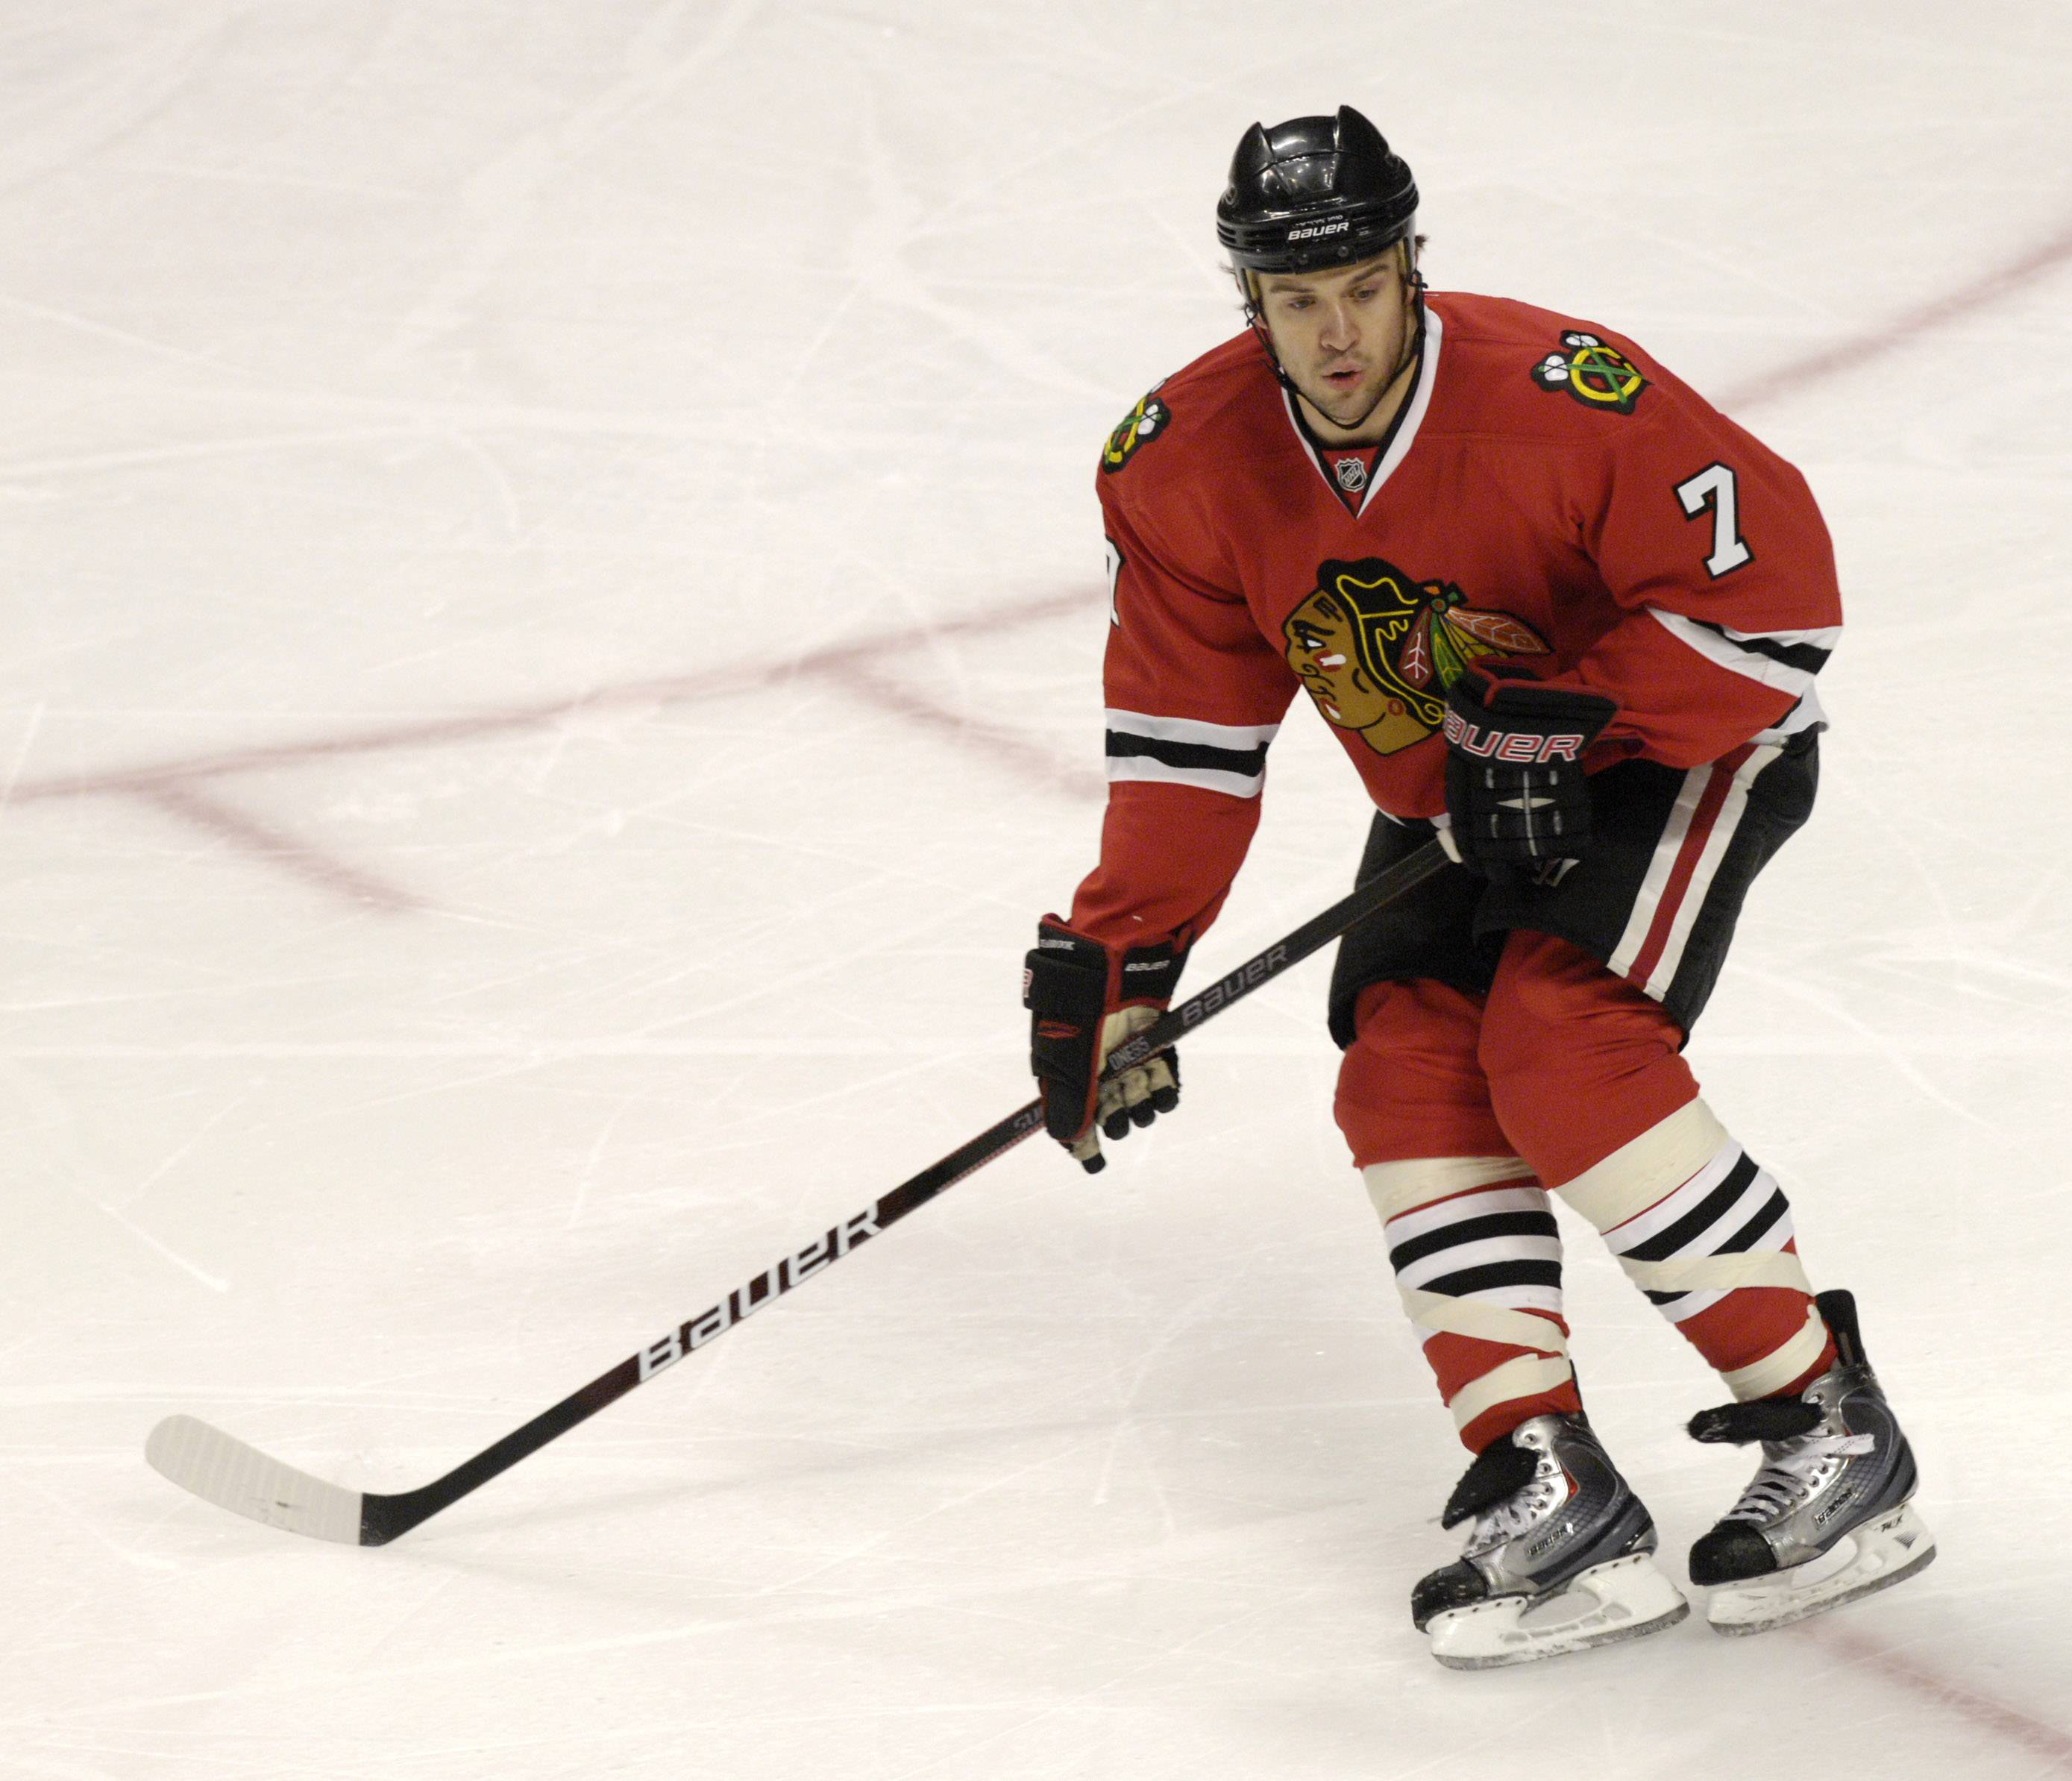 Brent Seabrook has been suspended three games by the NHL for an illegal hit to the St. Louis Blues' David Backes during Saturday's playoff game.